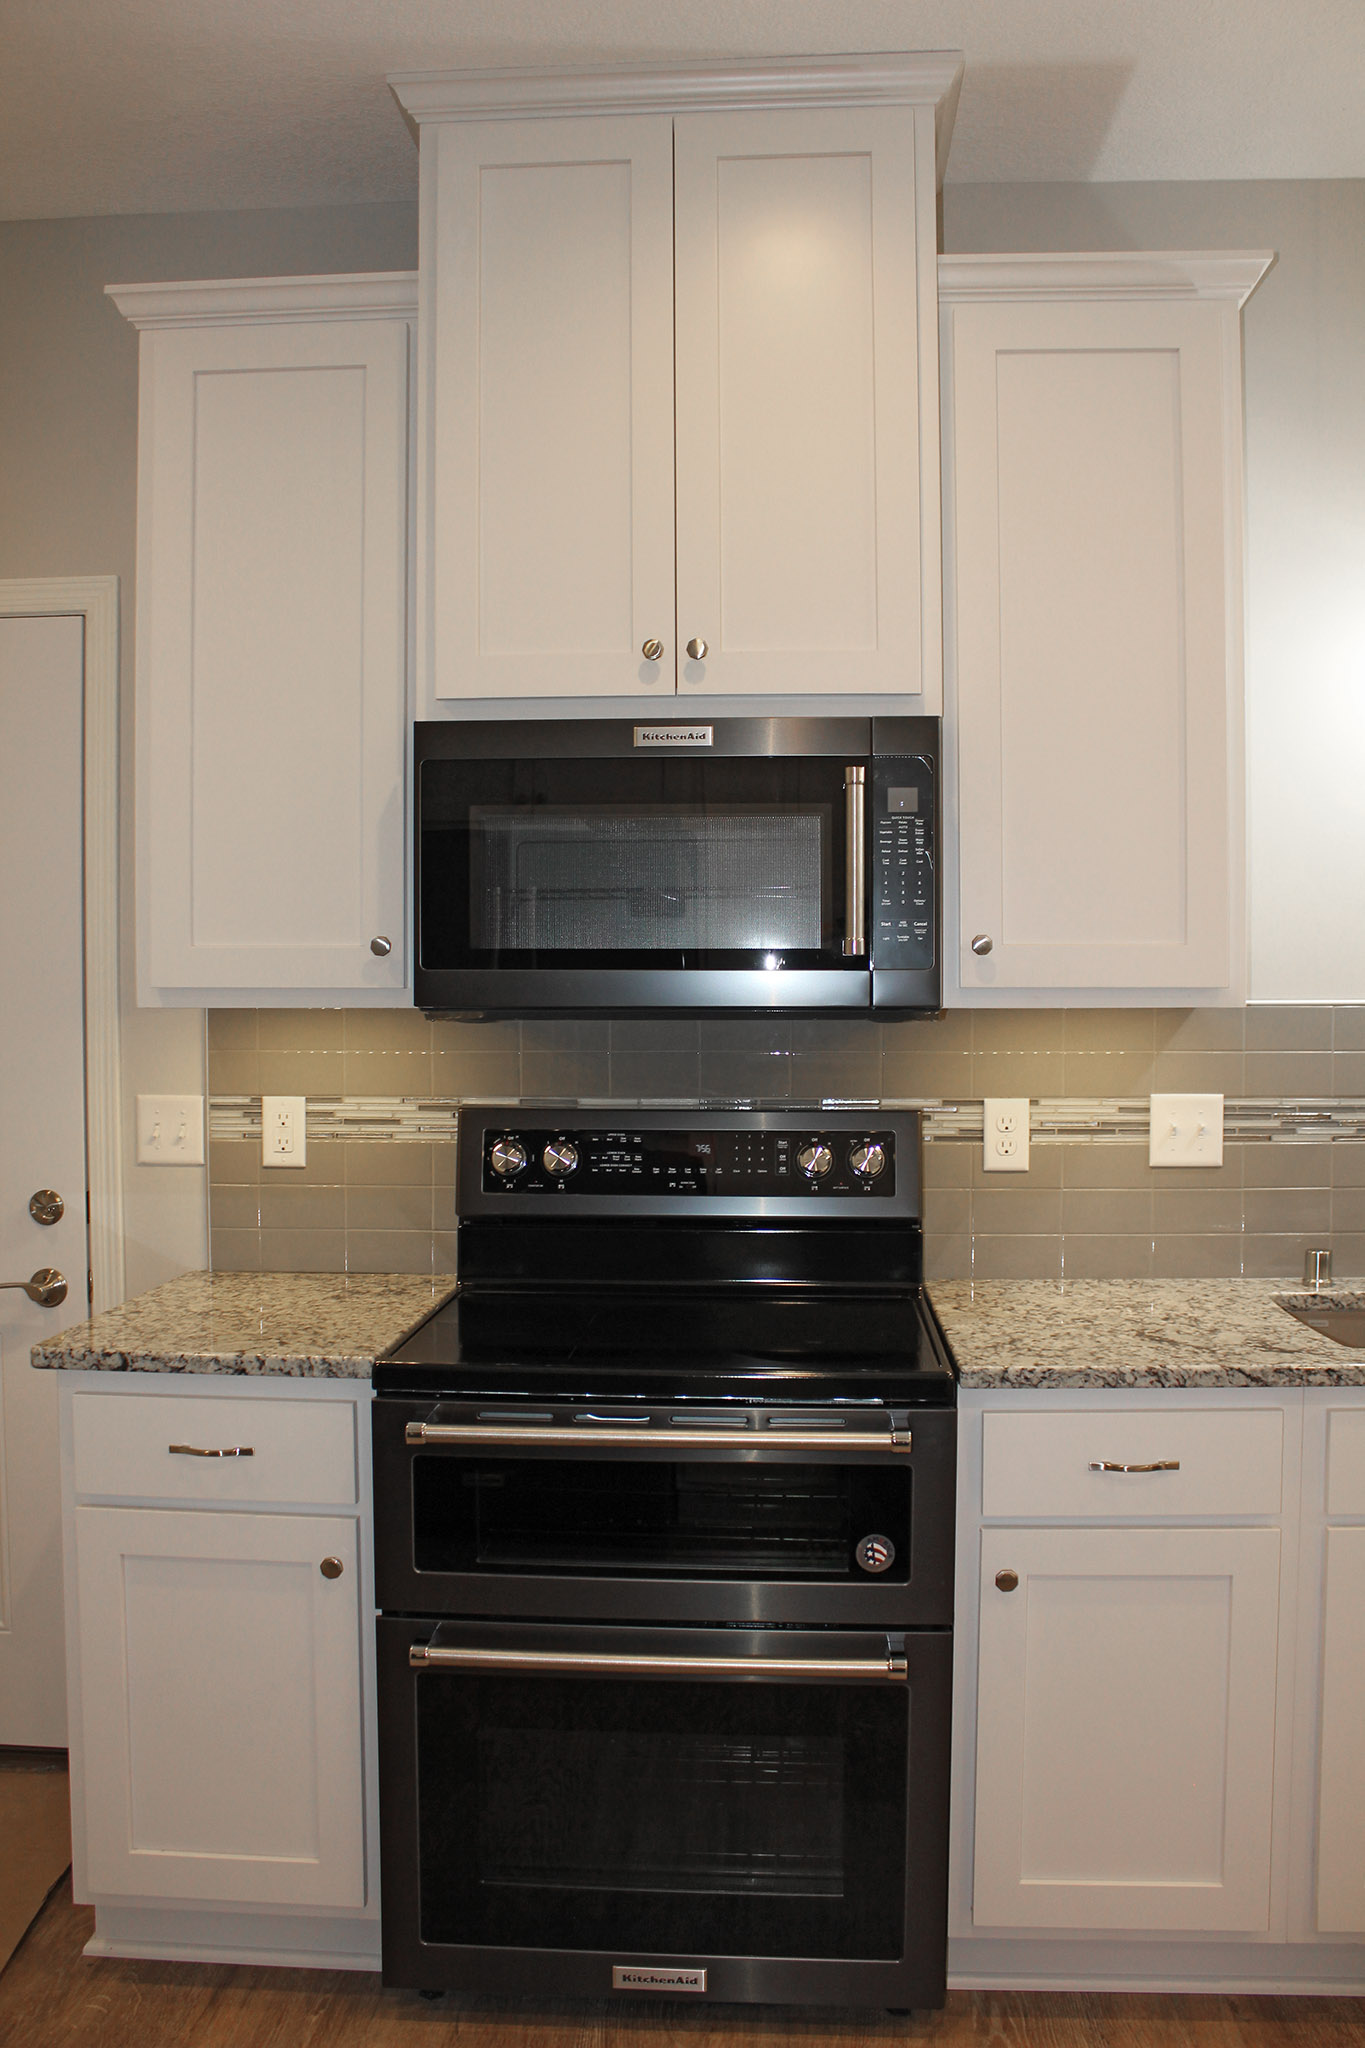 Black stainless appliances with white cabinets